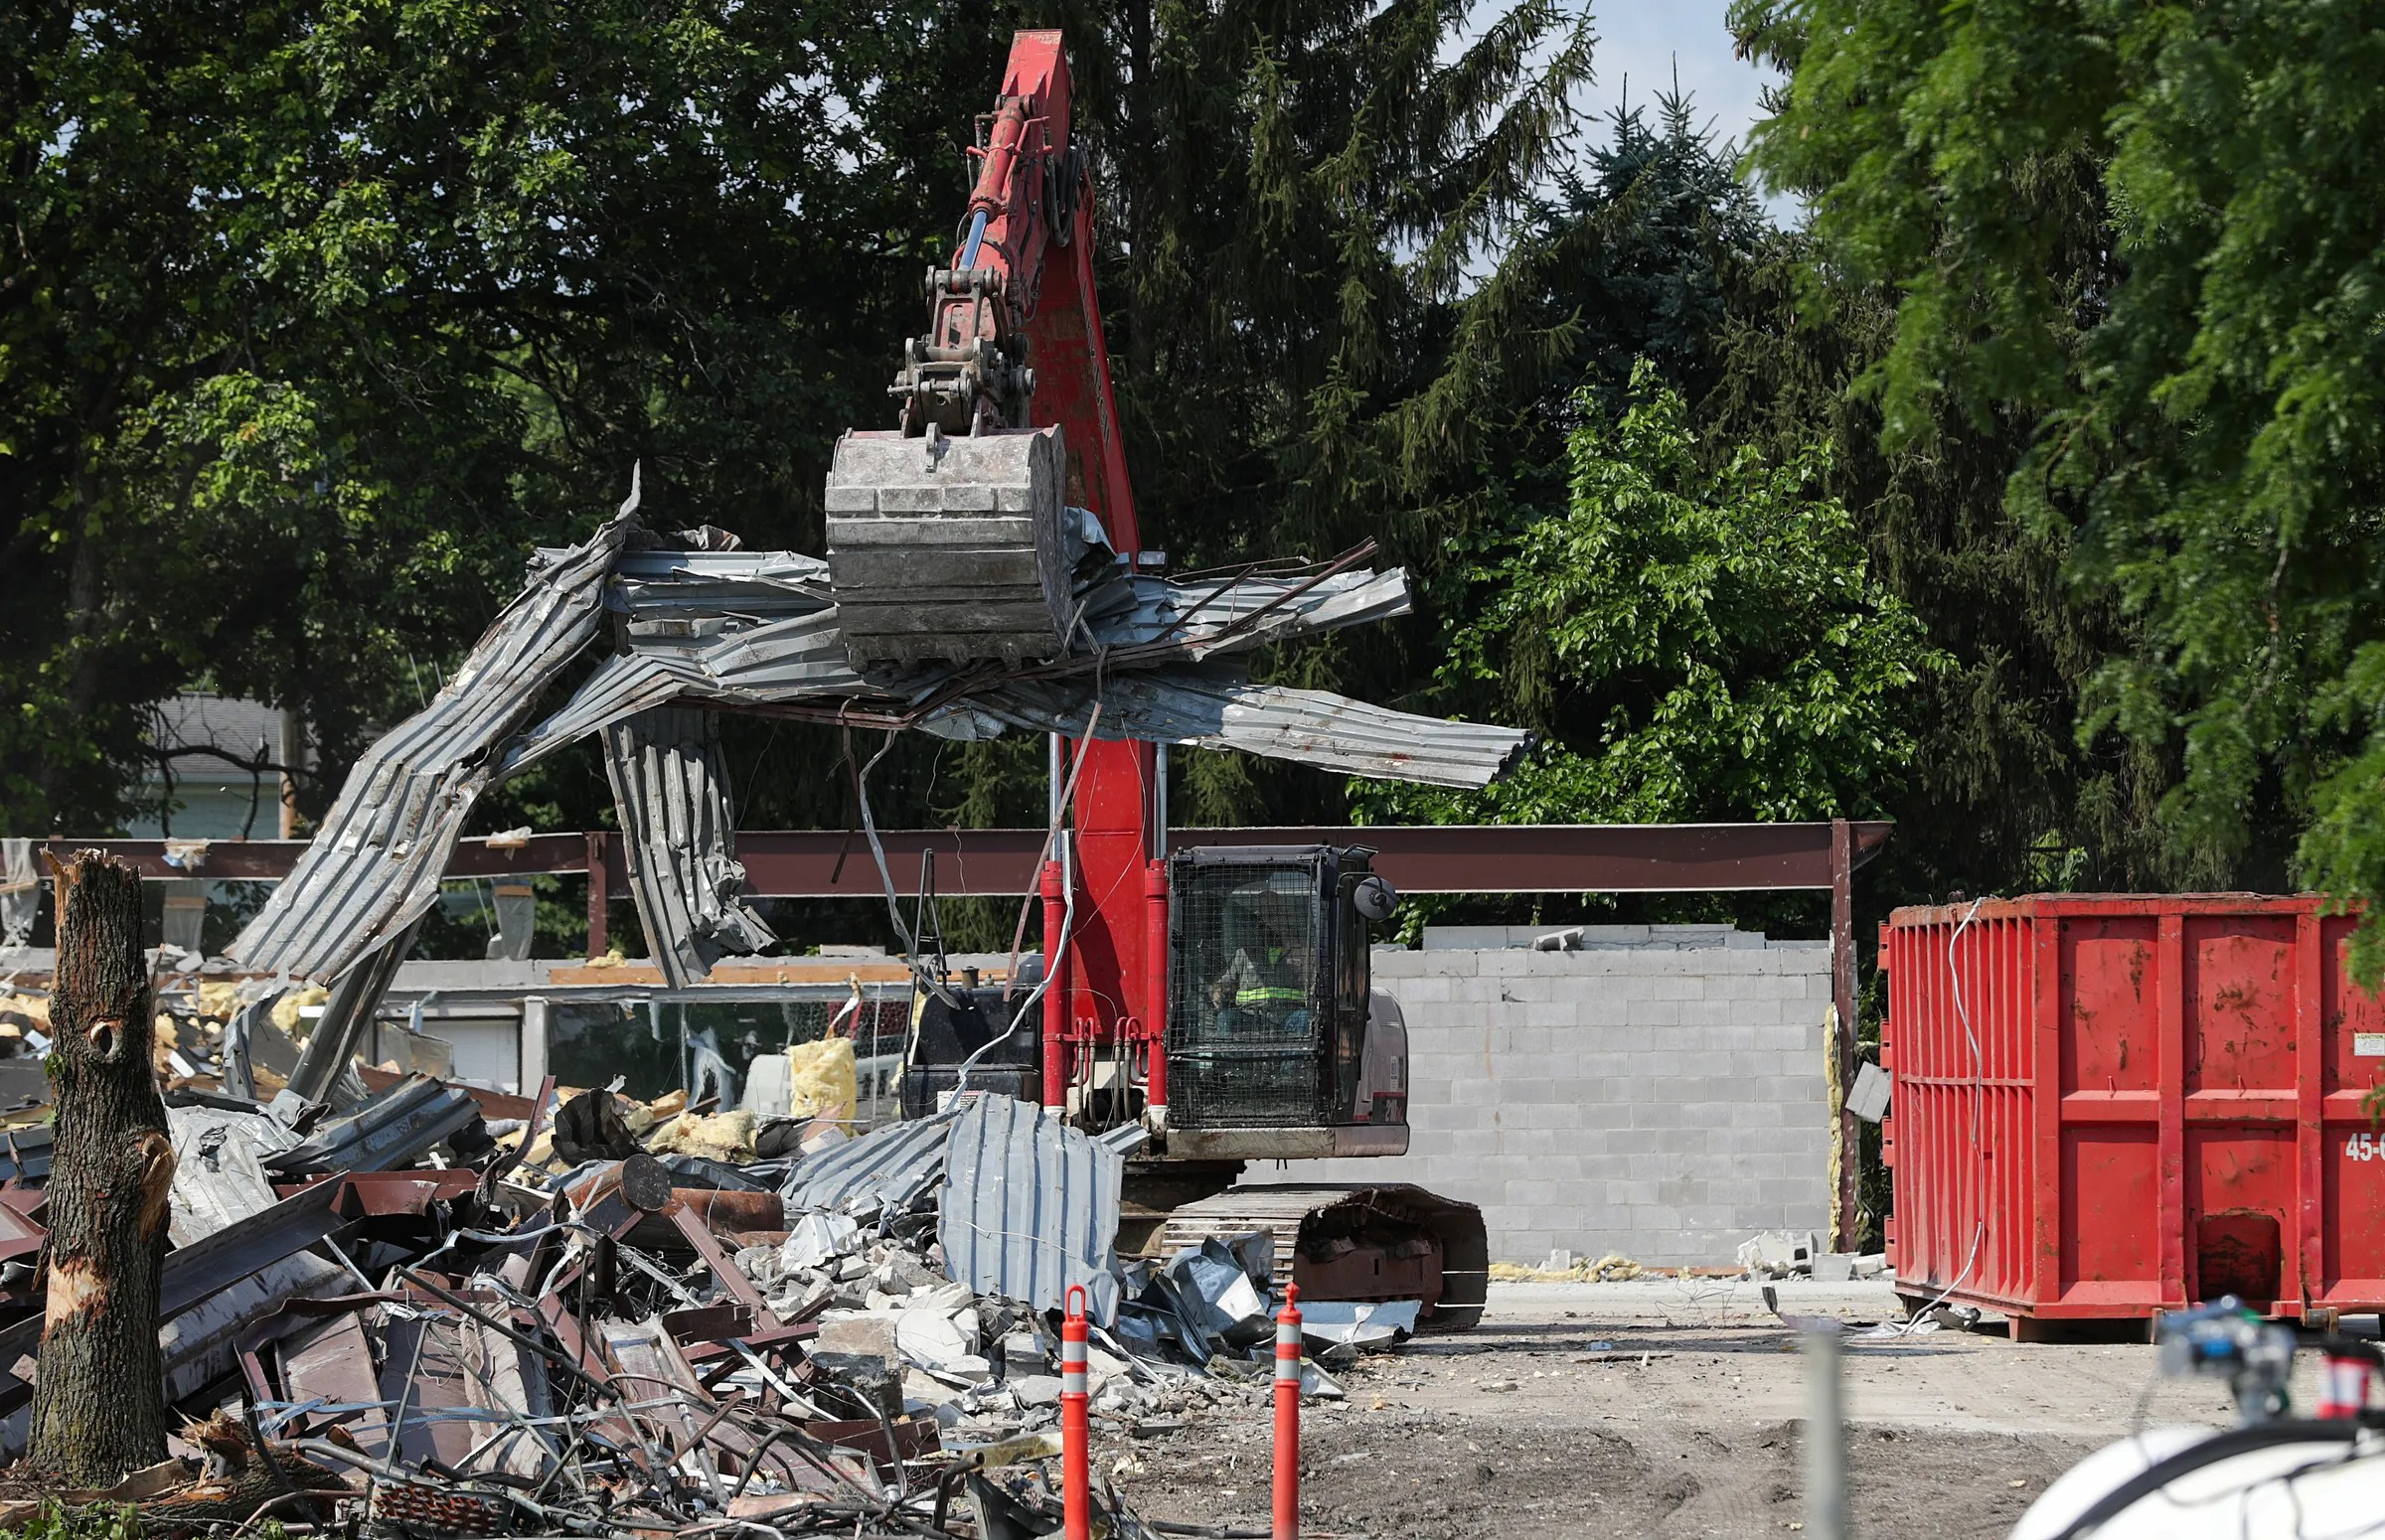 A construction crew removes debris from the demolished former facility to begin building the new Broad Ripple Park Family Center on Wednesday, July 14, 2021, in Indianapolis. The new facility, which will cost an estimated $19.7 million and open by the end of 2022, will feature an indoor track, children's playground, updated fitness center, group meeting area and health clinic.